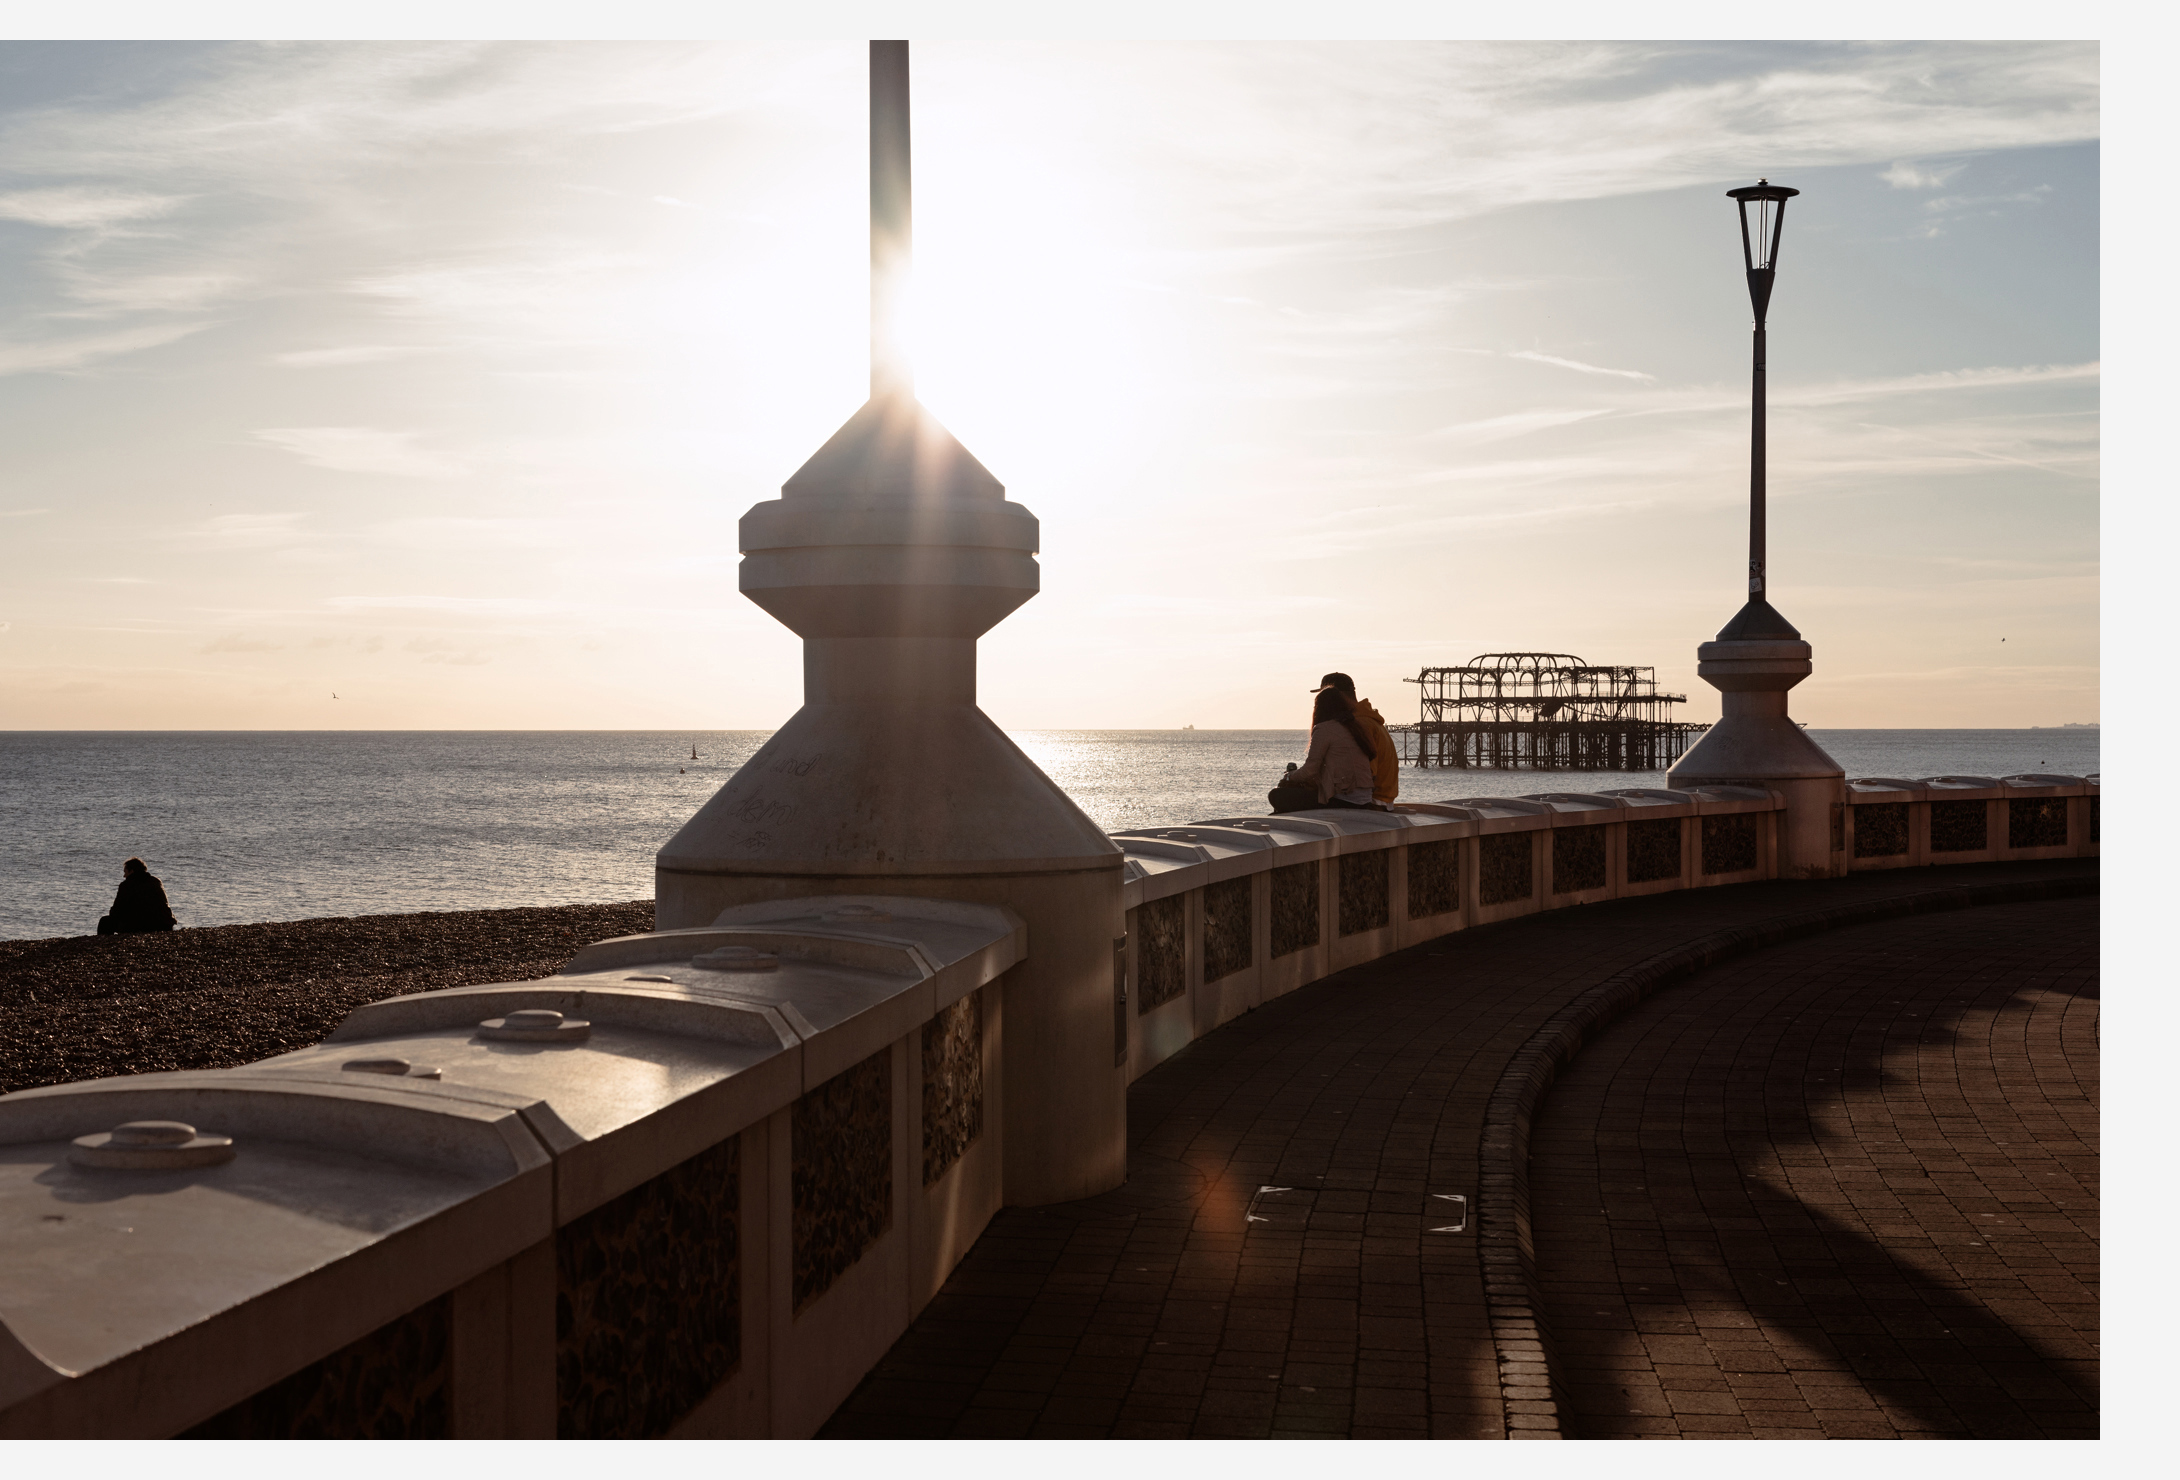 onthenorway brighton pier england hove